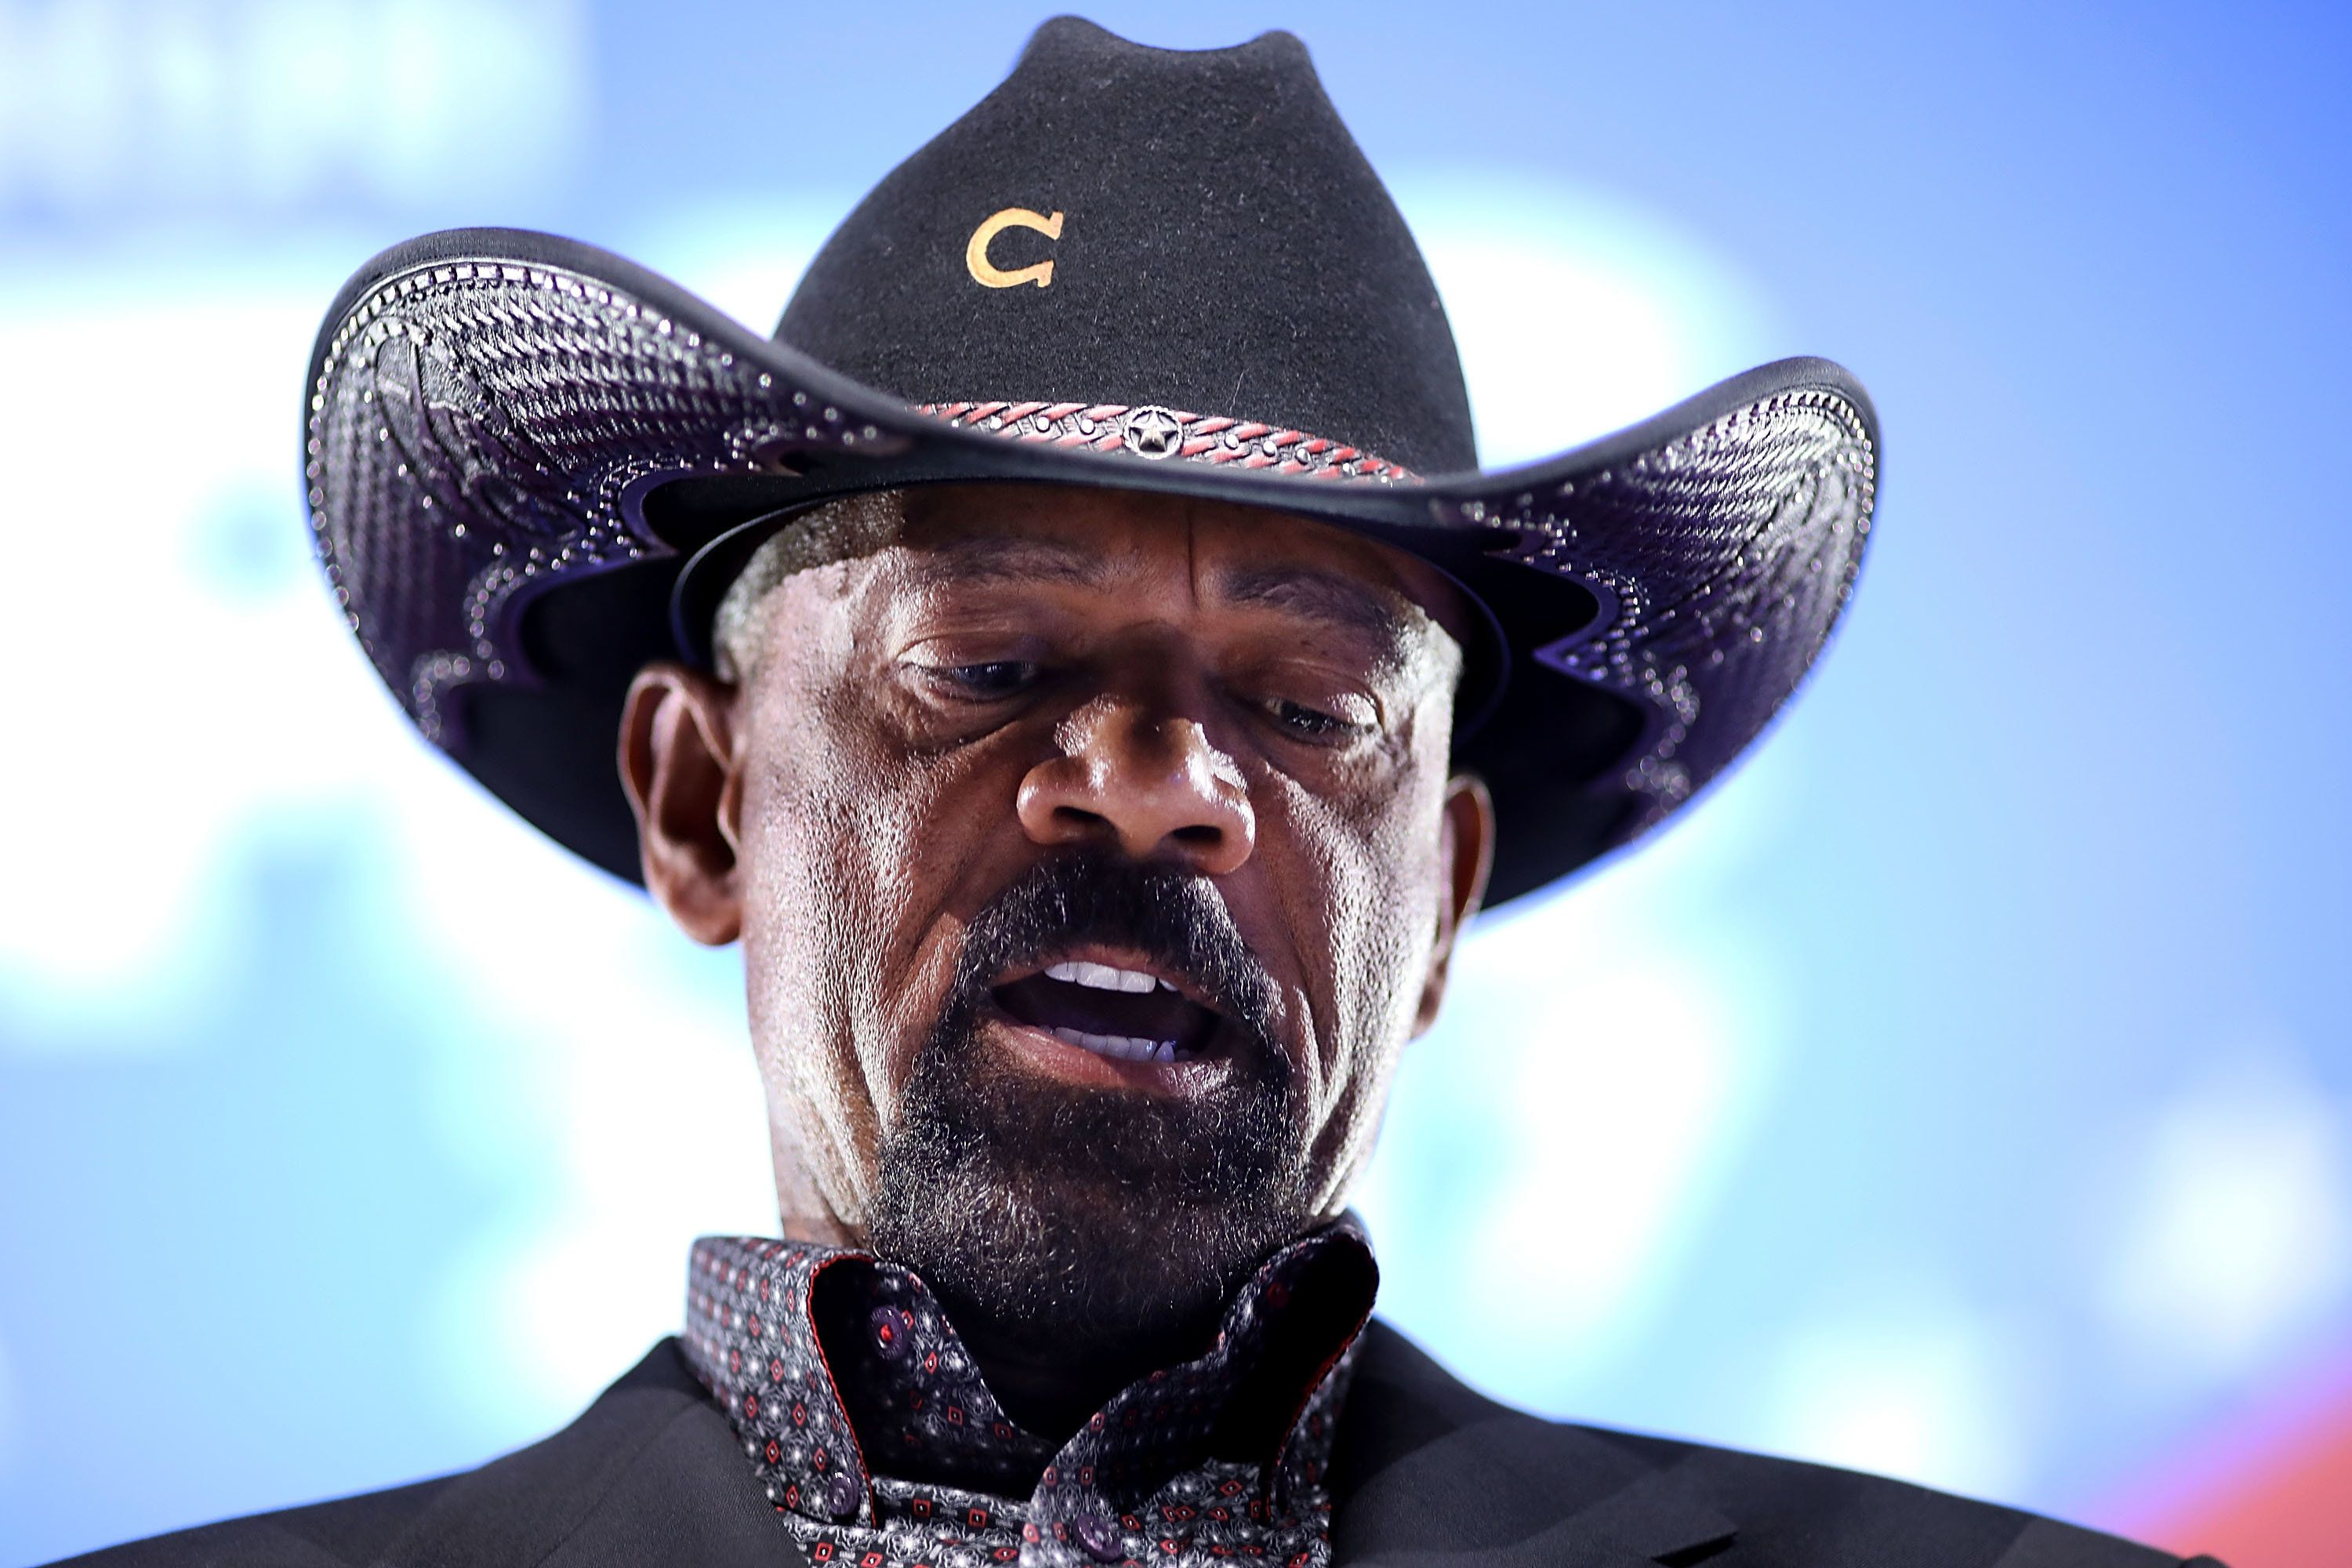 NATIONAL HARBOR, MD - FEBRUARY 23:  Milwaukee County Sheriff David Clarke speaks as part of a pannel discussion titled 'When did World War III Begin? Part A: Threats at Home' during the Conservative Political Action Conference at the Gaylord National Resort and Convention Center February 23, 2017 in National Harbor, Maryland. Hosted by the American Conservative Union, CPAC is an annual gathering of right wing politicians, commentators and their supporters.  (Photo by Chip Somodevilla/Getty Images)